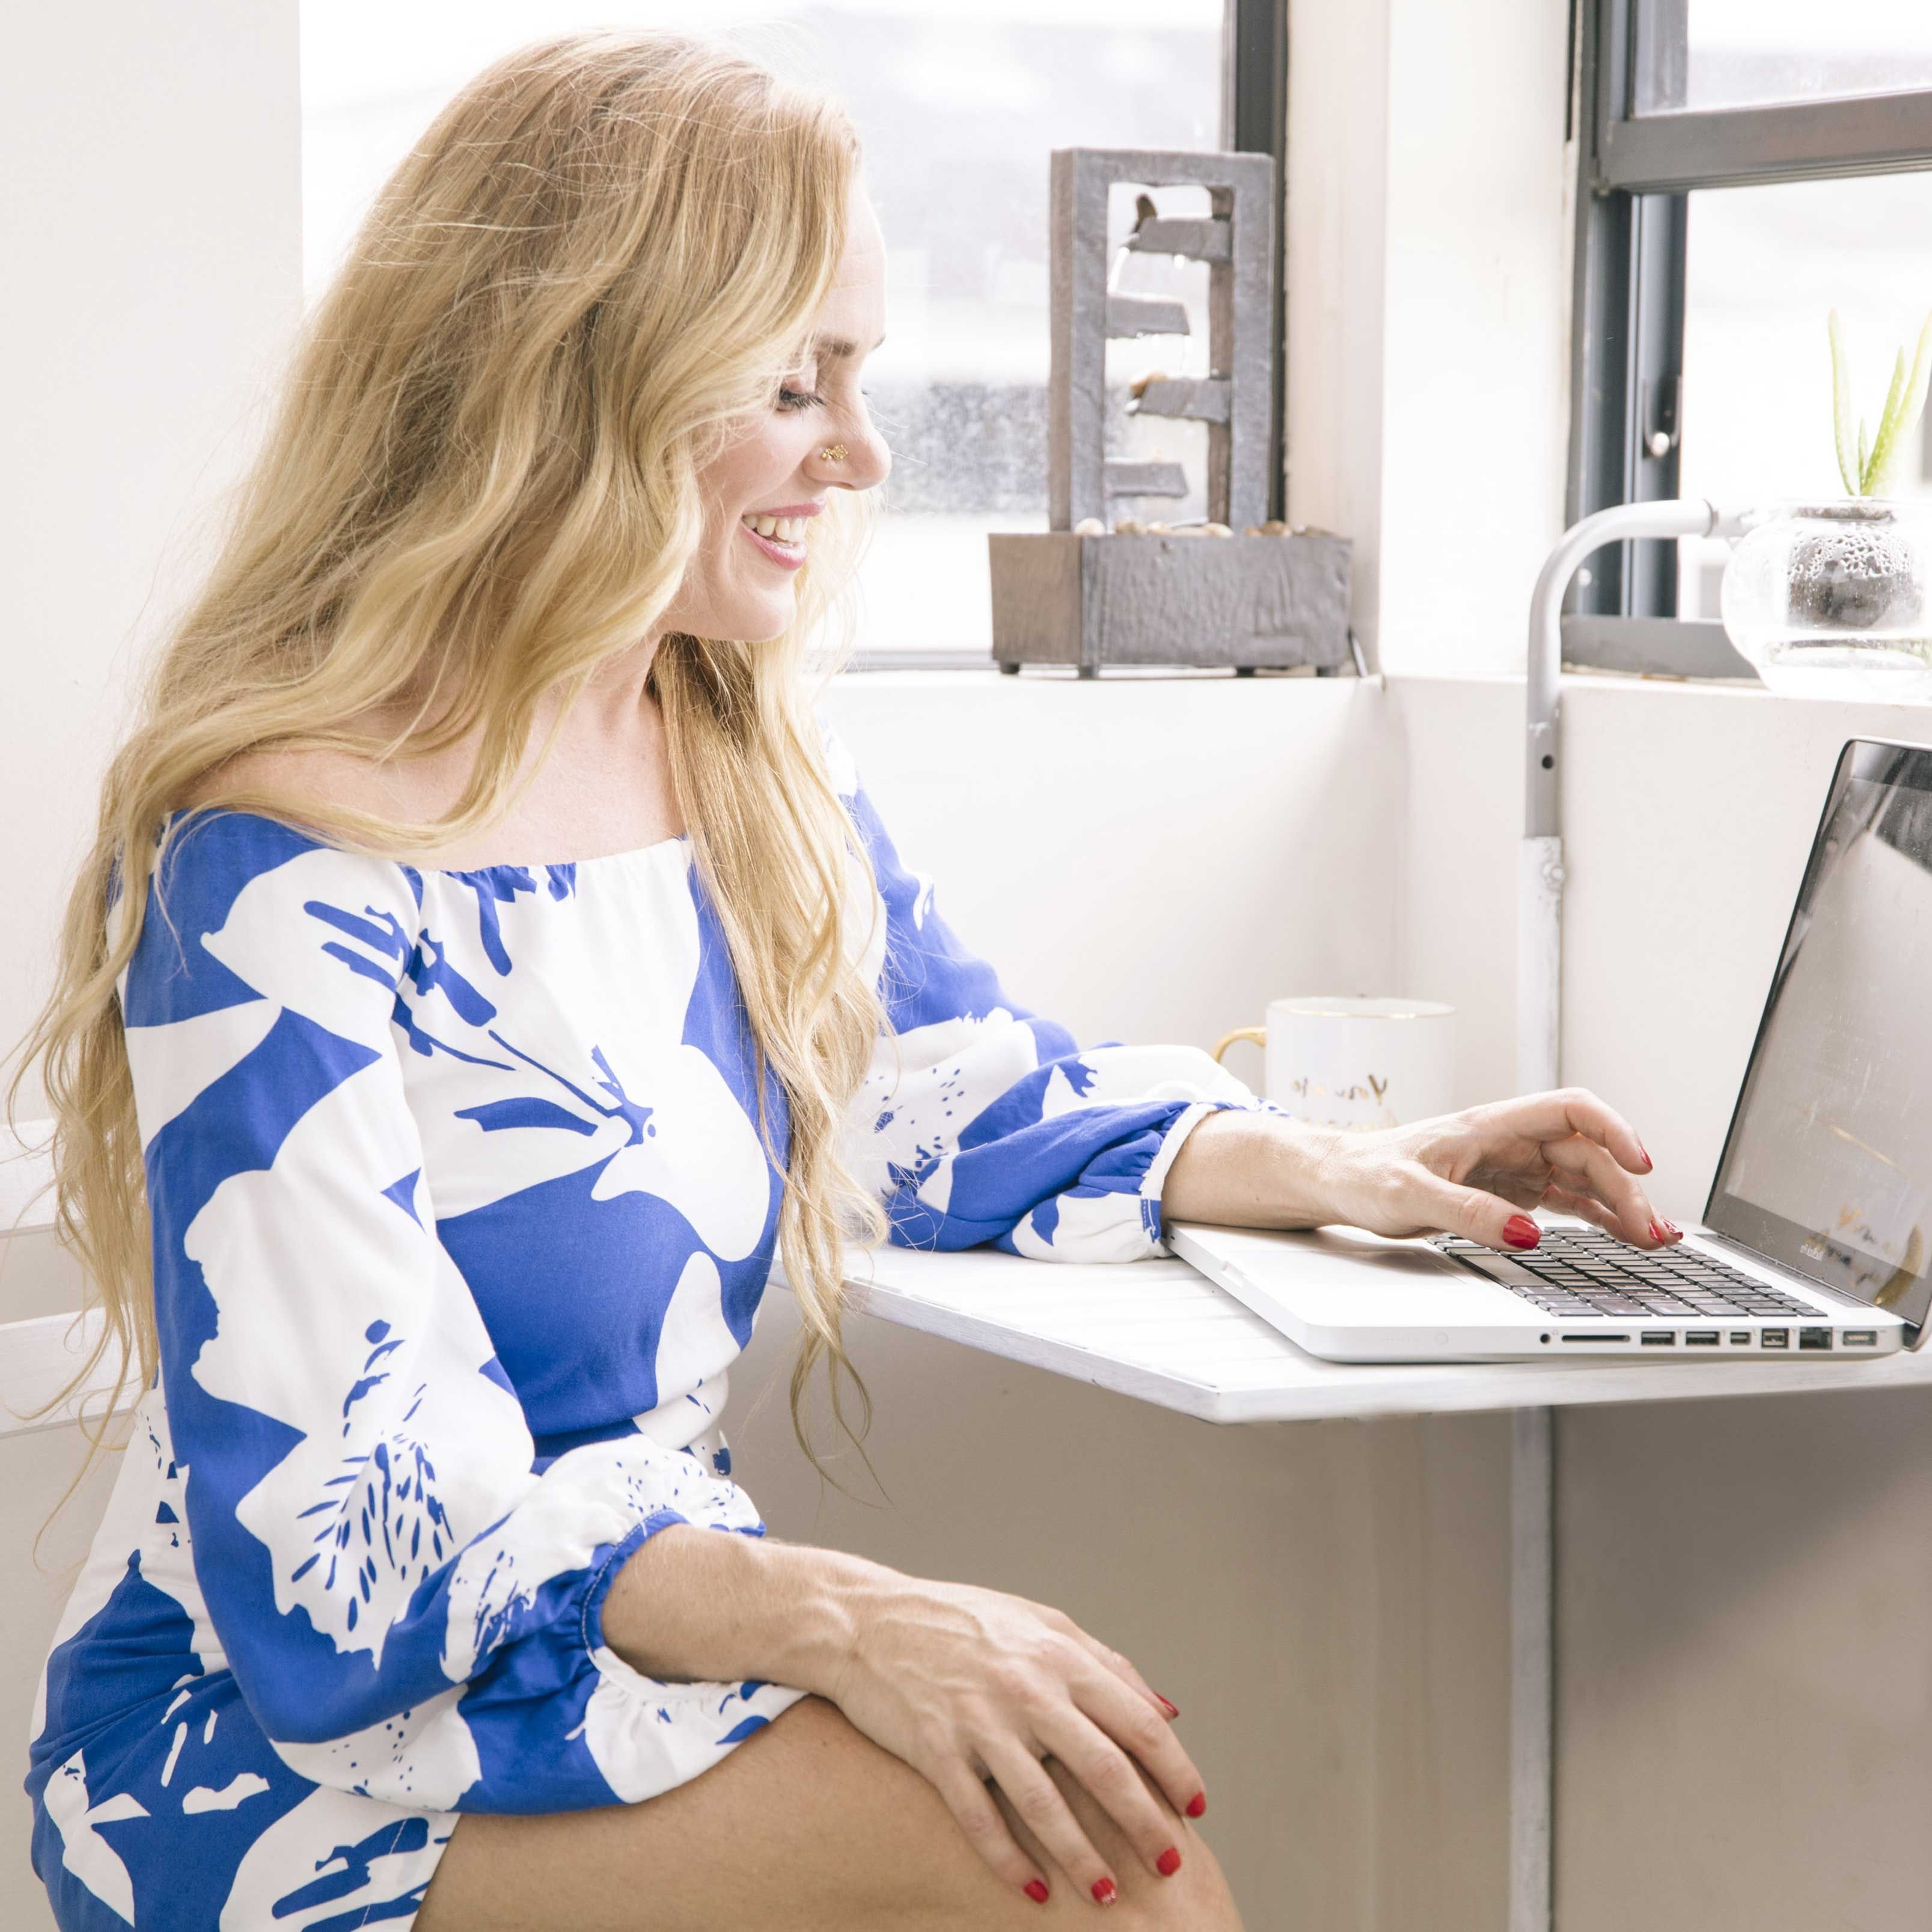 Business woman laughing in her branding photoshoot while using a laptop in a coffee shop